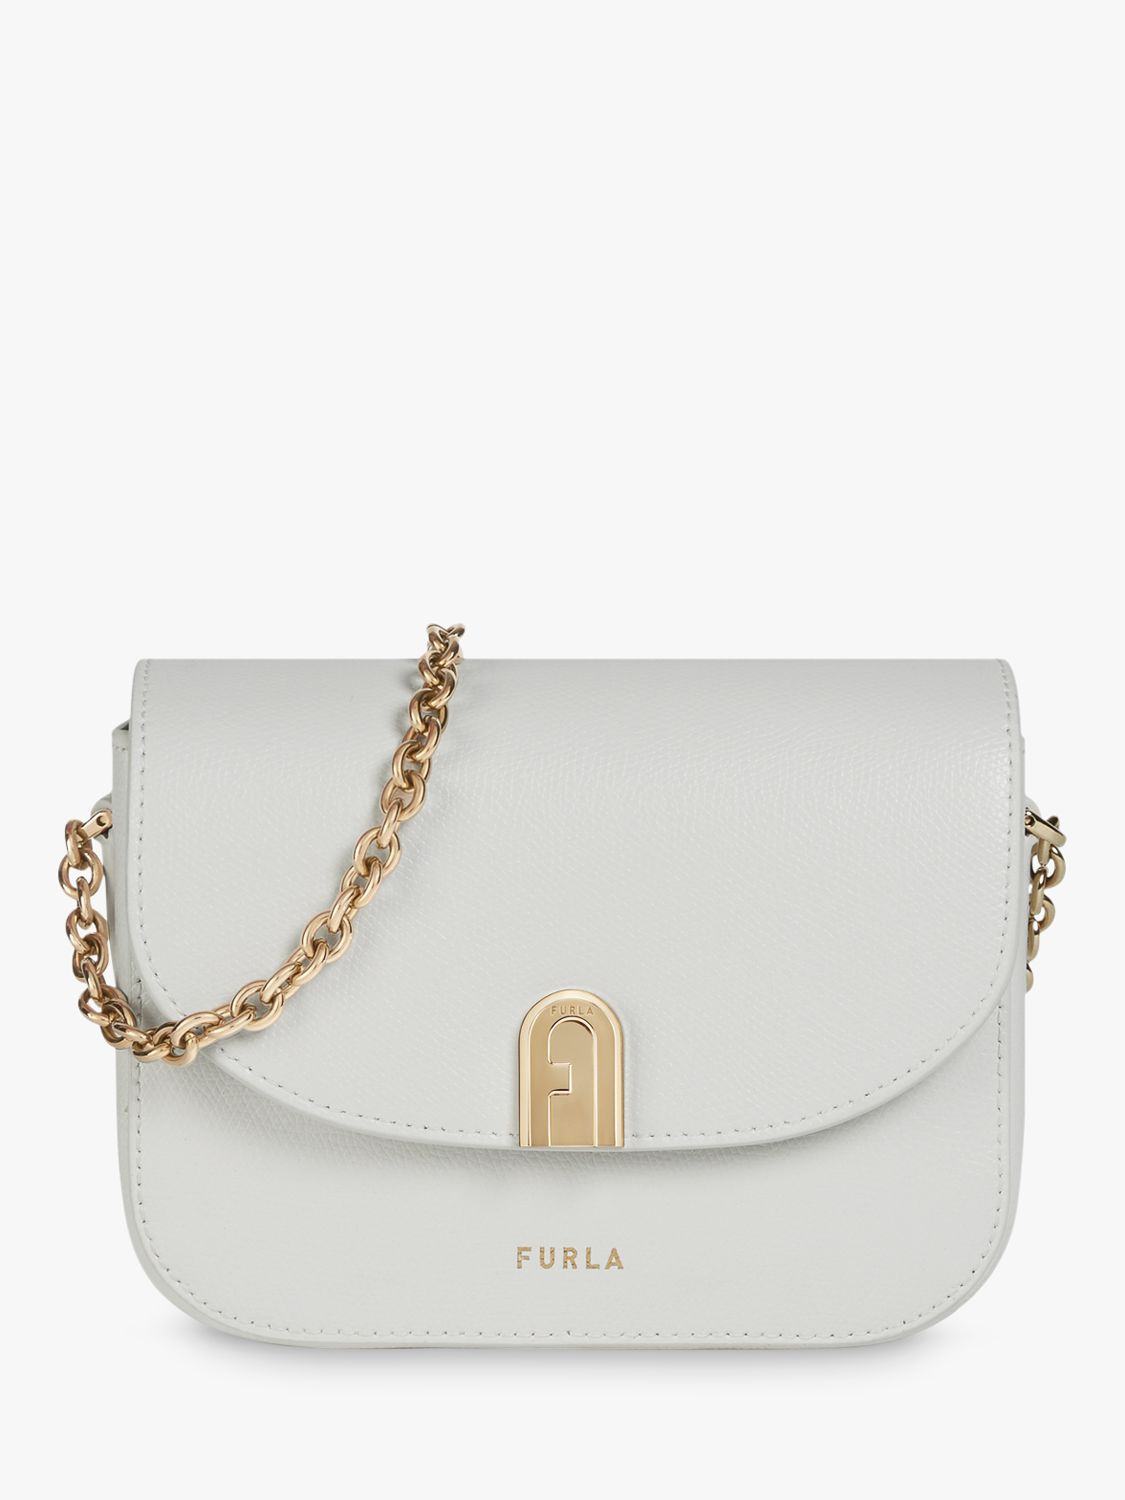 Furla Furla 1927 Leather Cross Body Bag, Talco